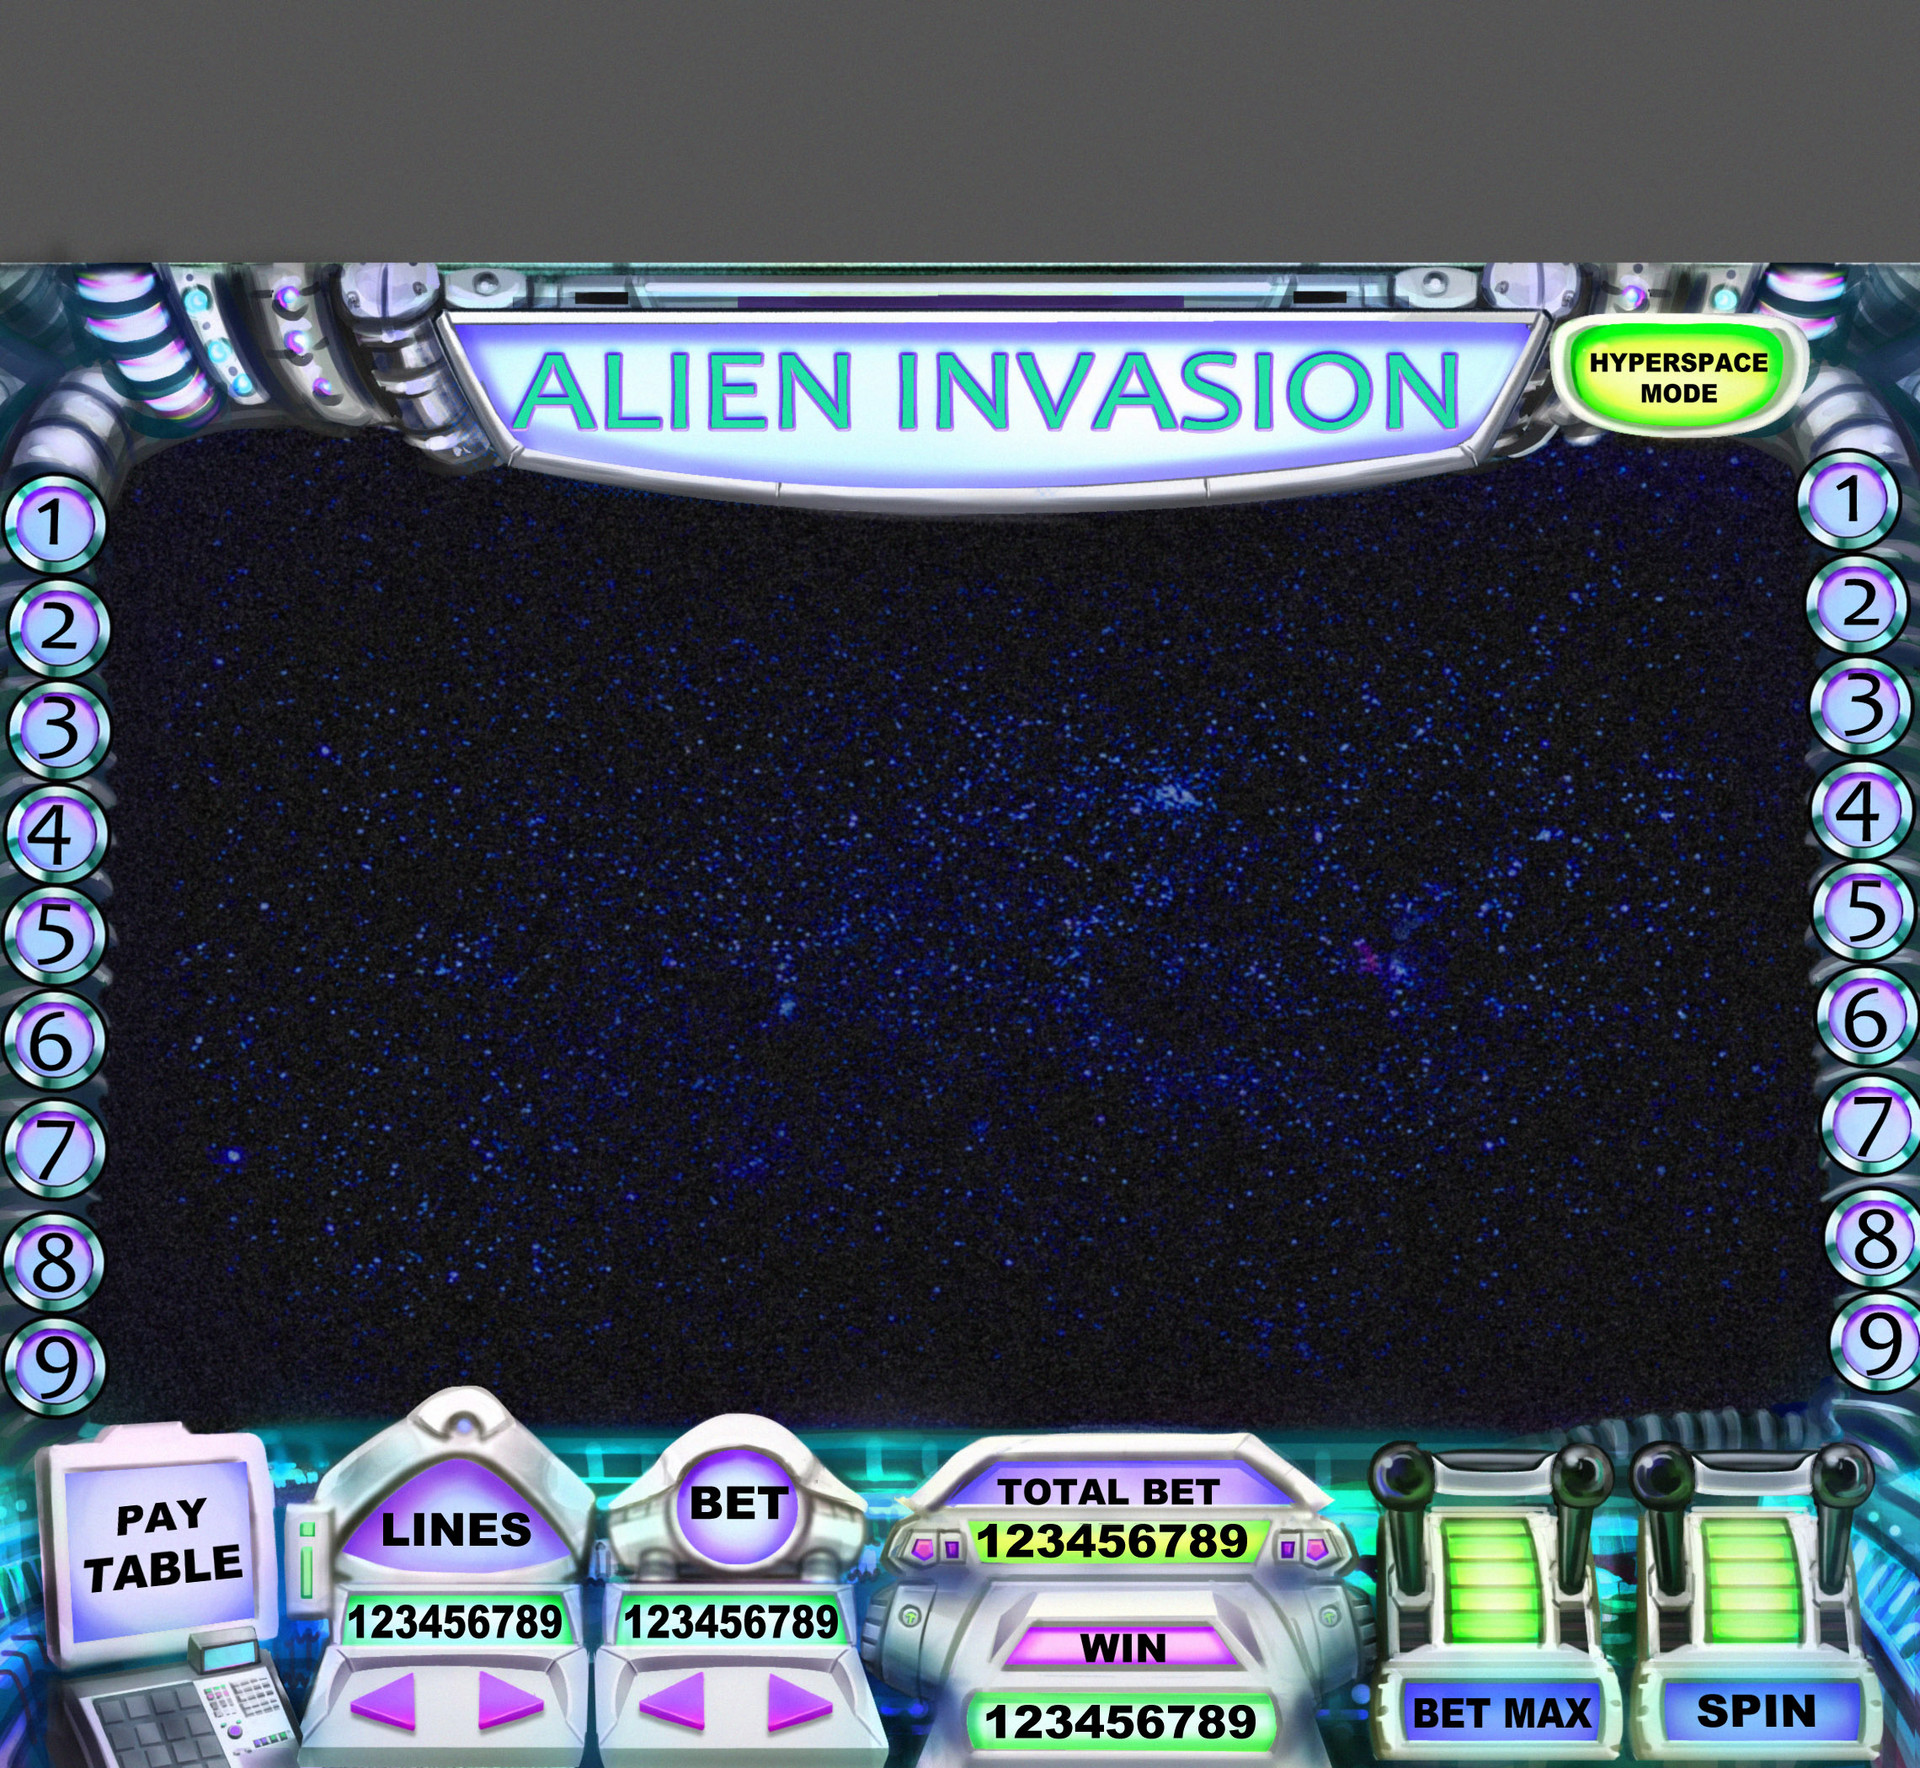 Stephen noble alieninvasionfinal2txt